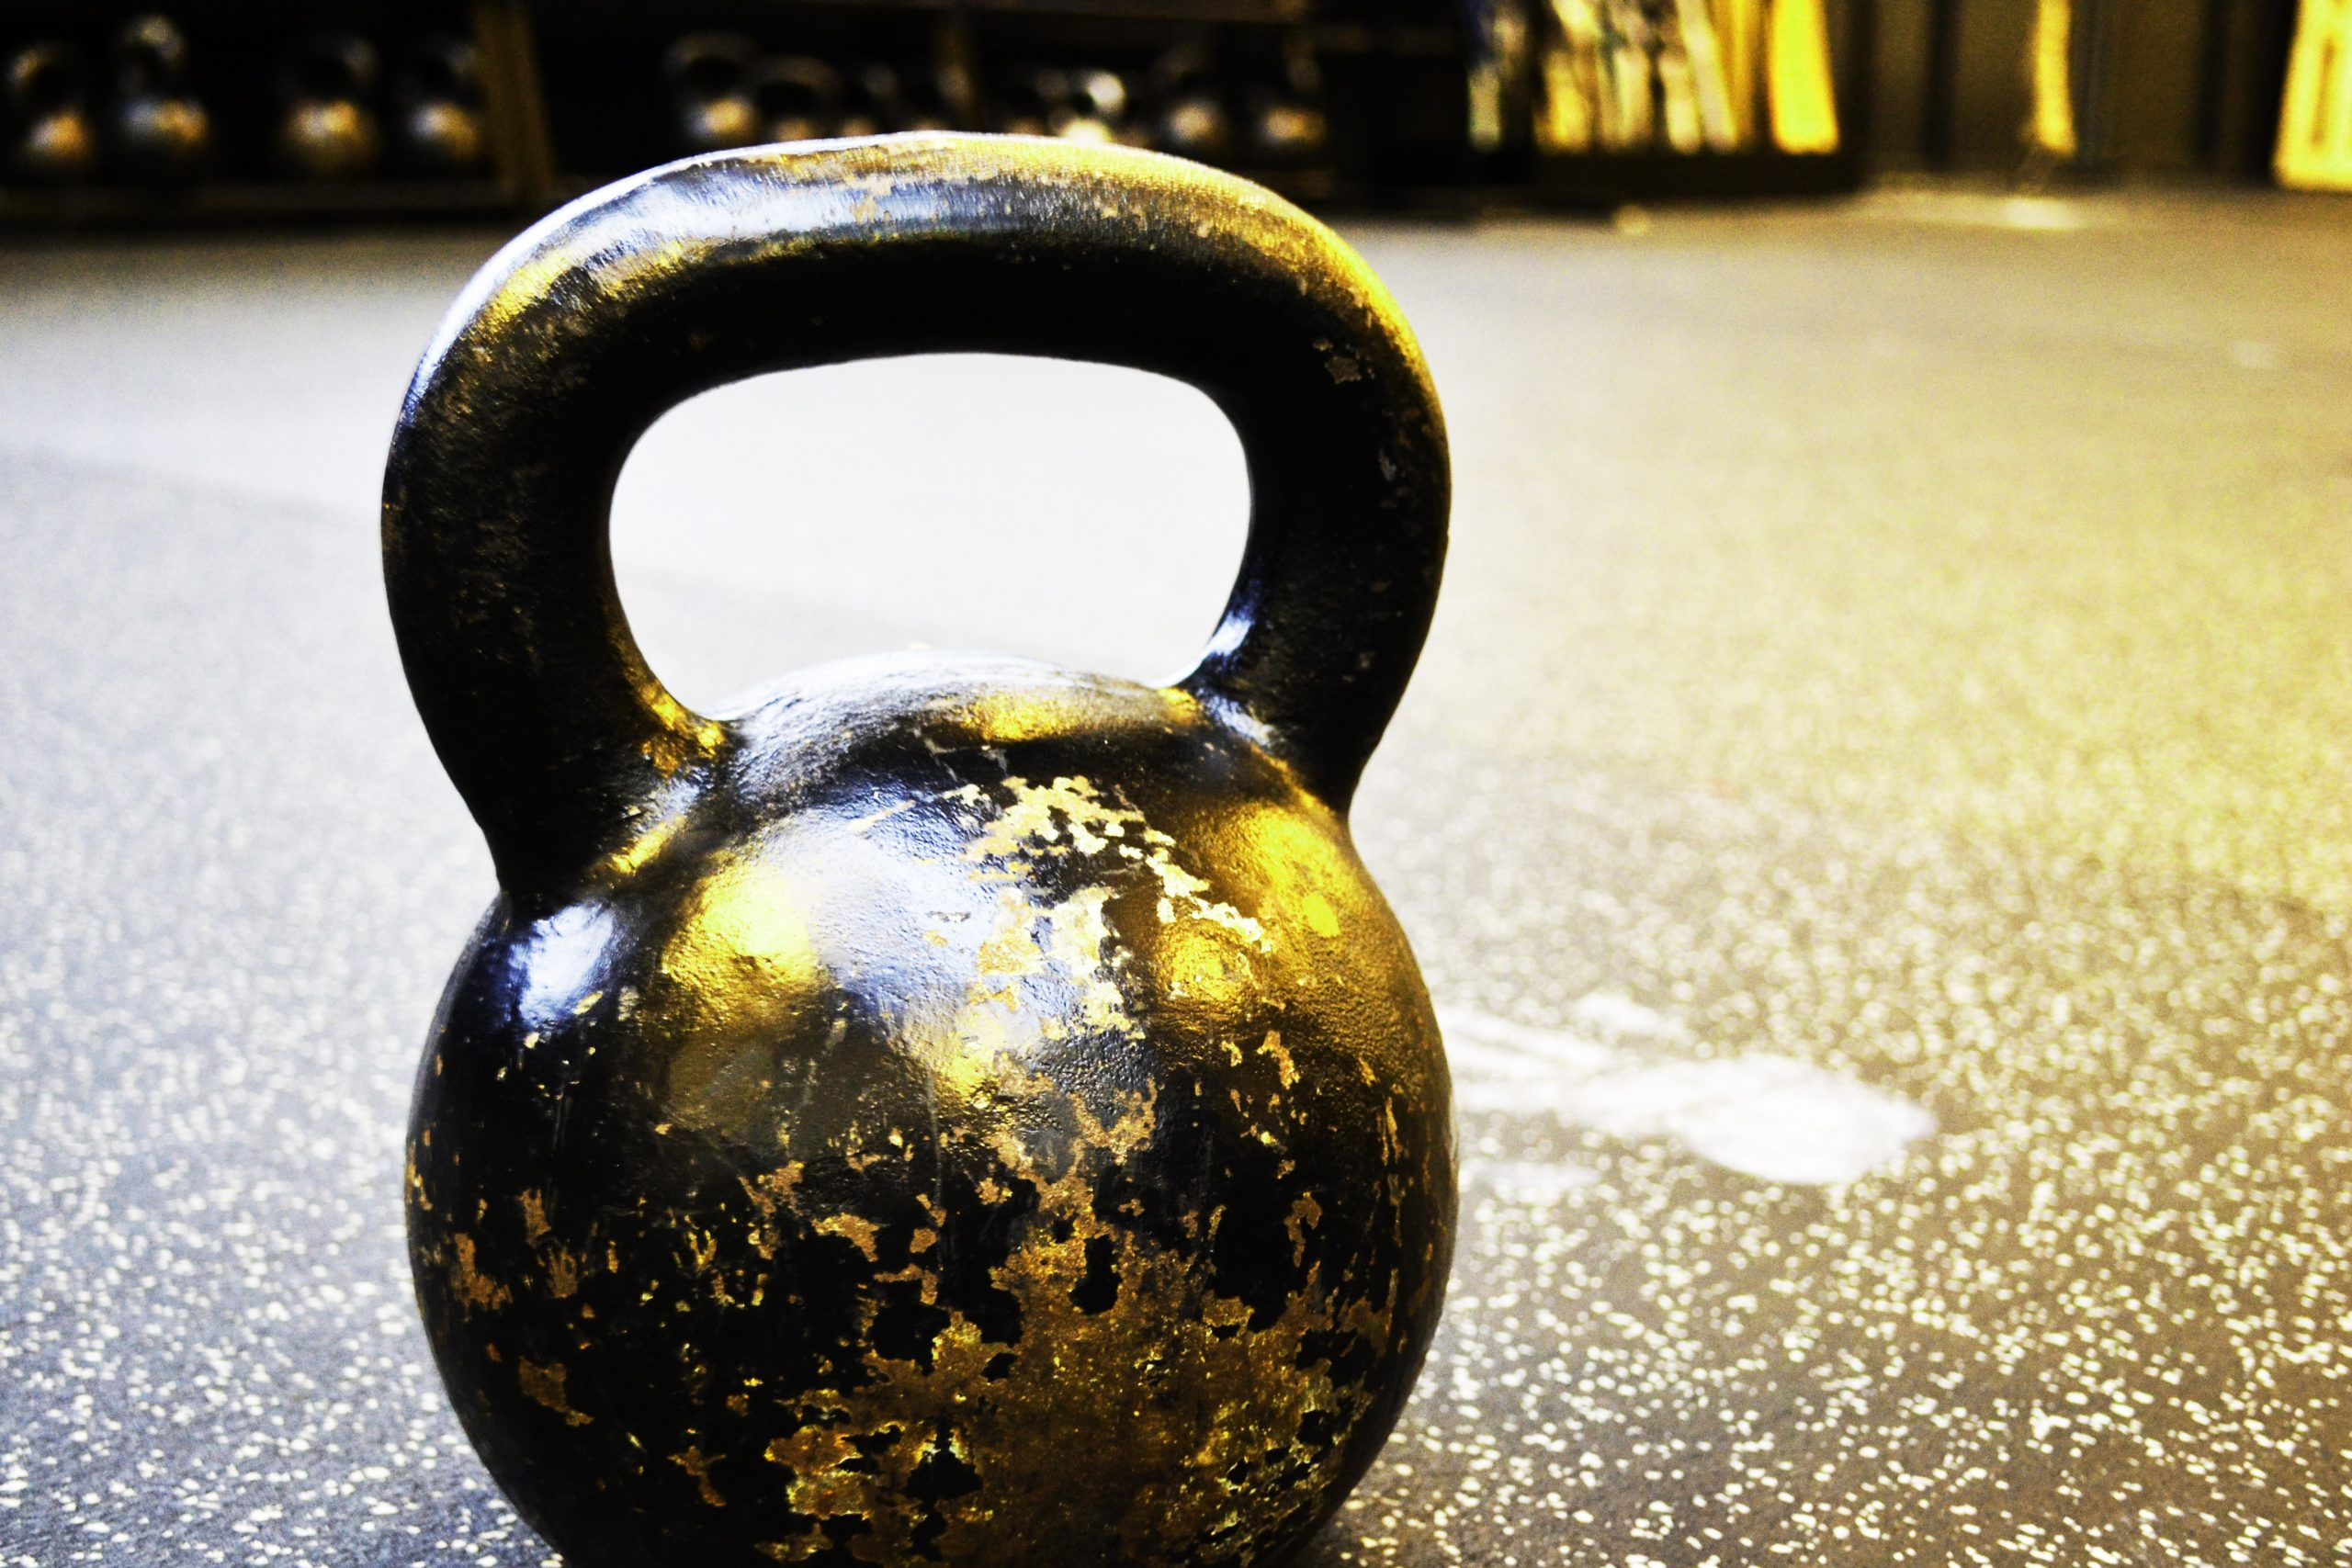 kettlebell on ground